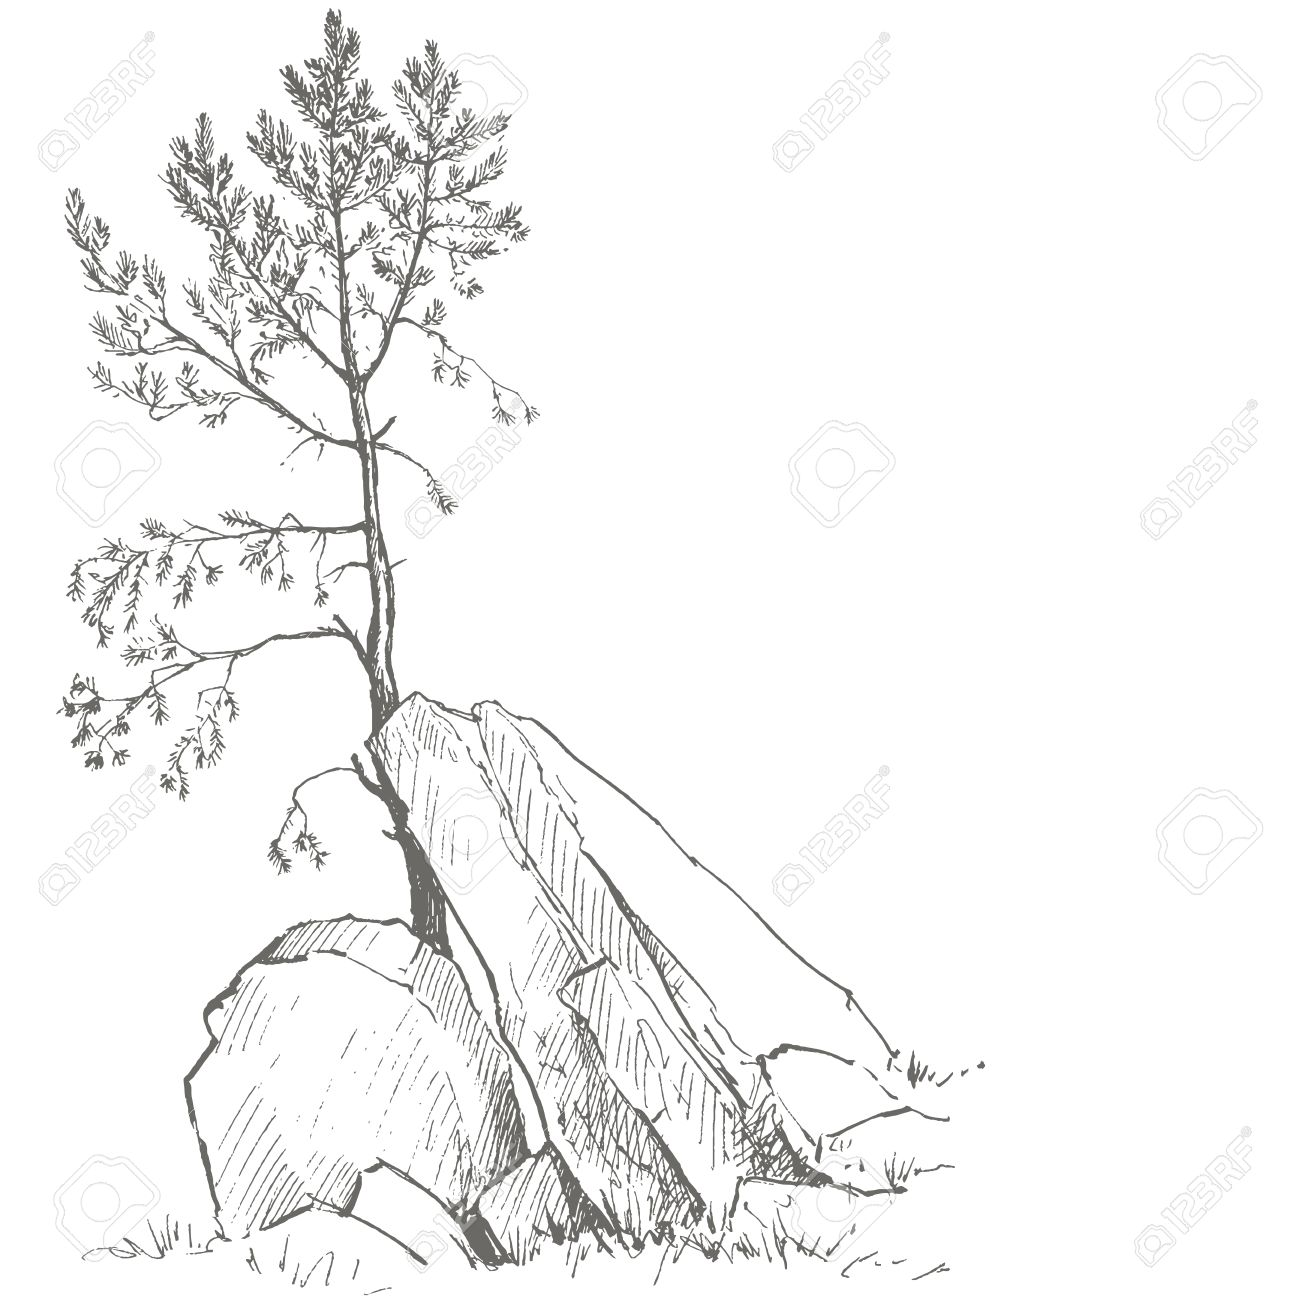 1300x1300 Young Pine Tree And Rocks Drawing By Ink, Sketch Of Wild Nature